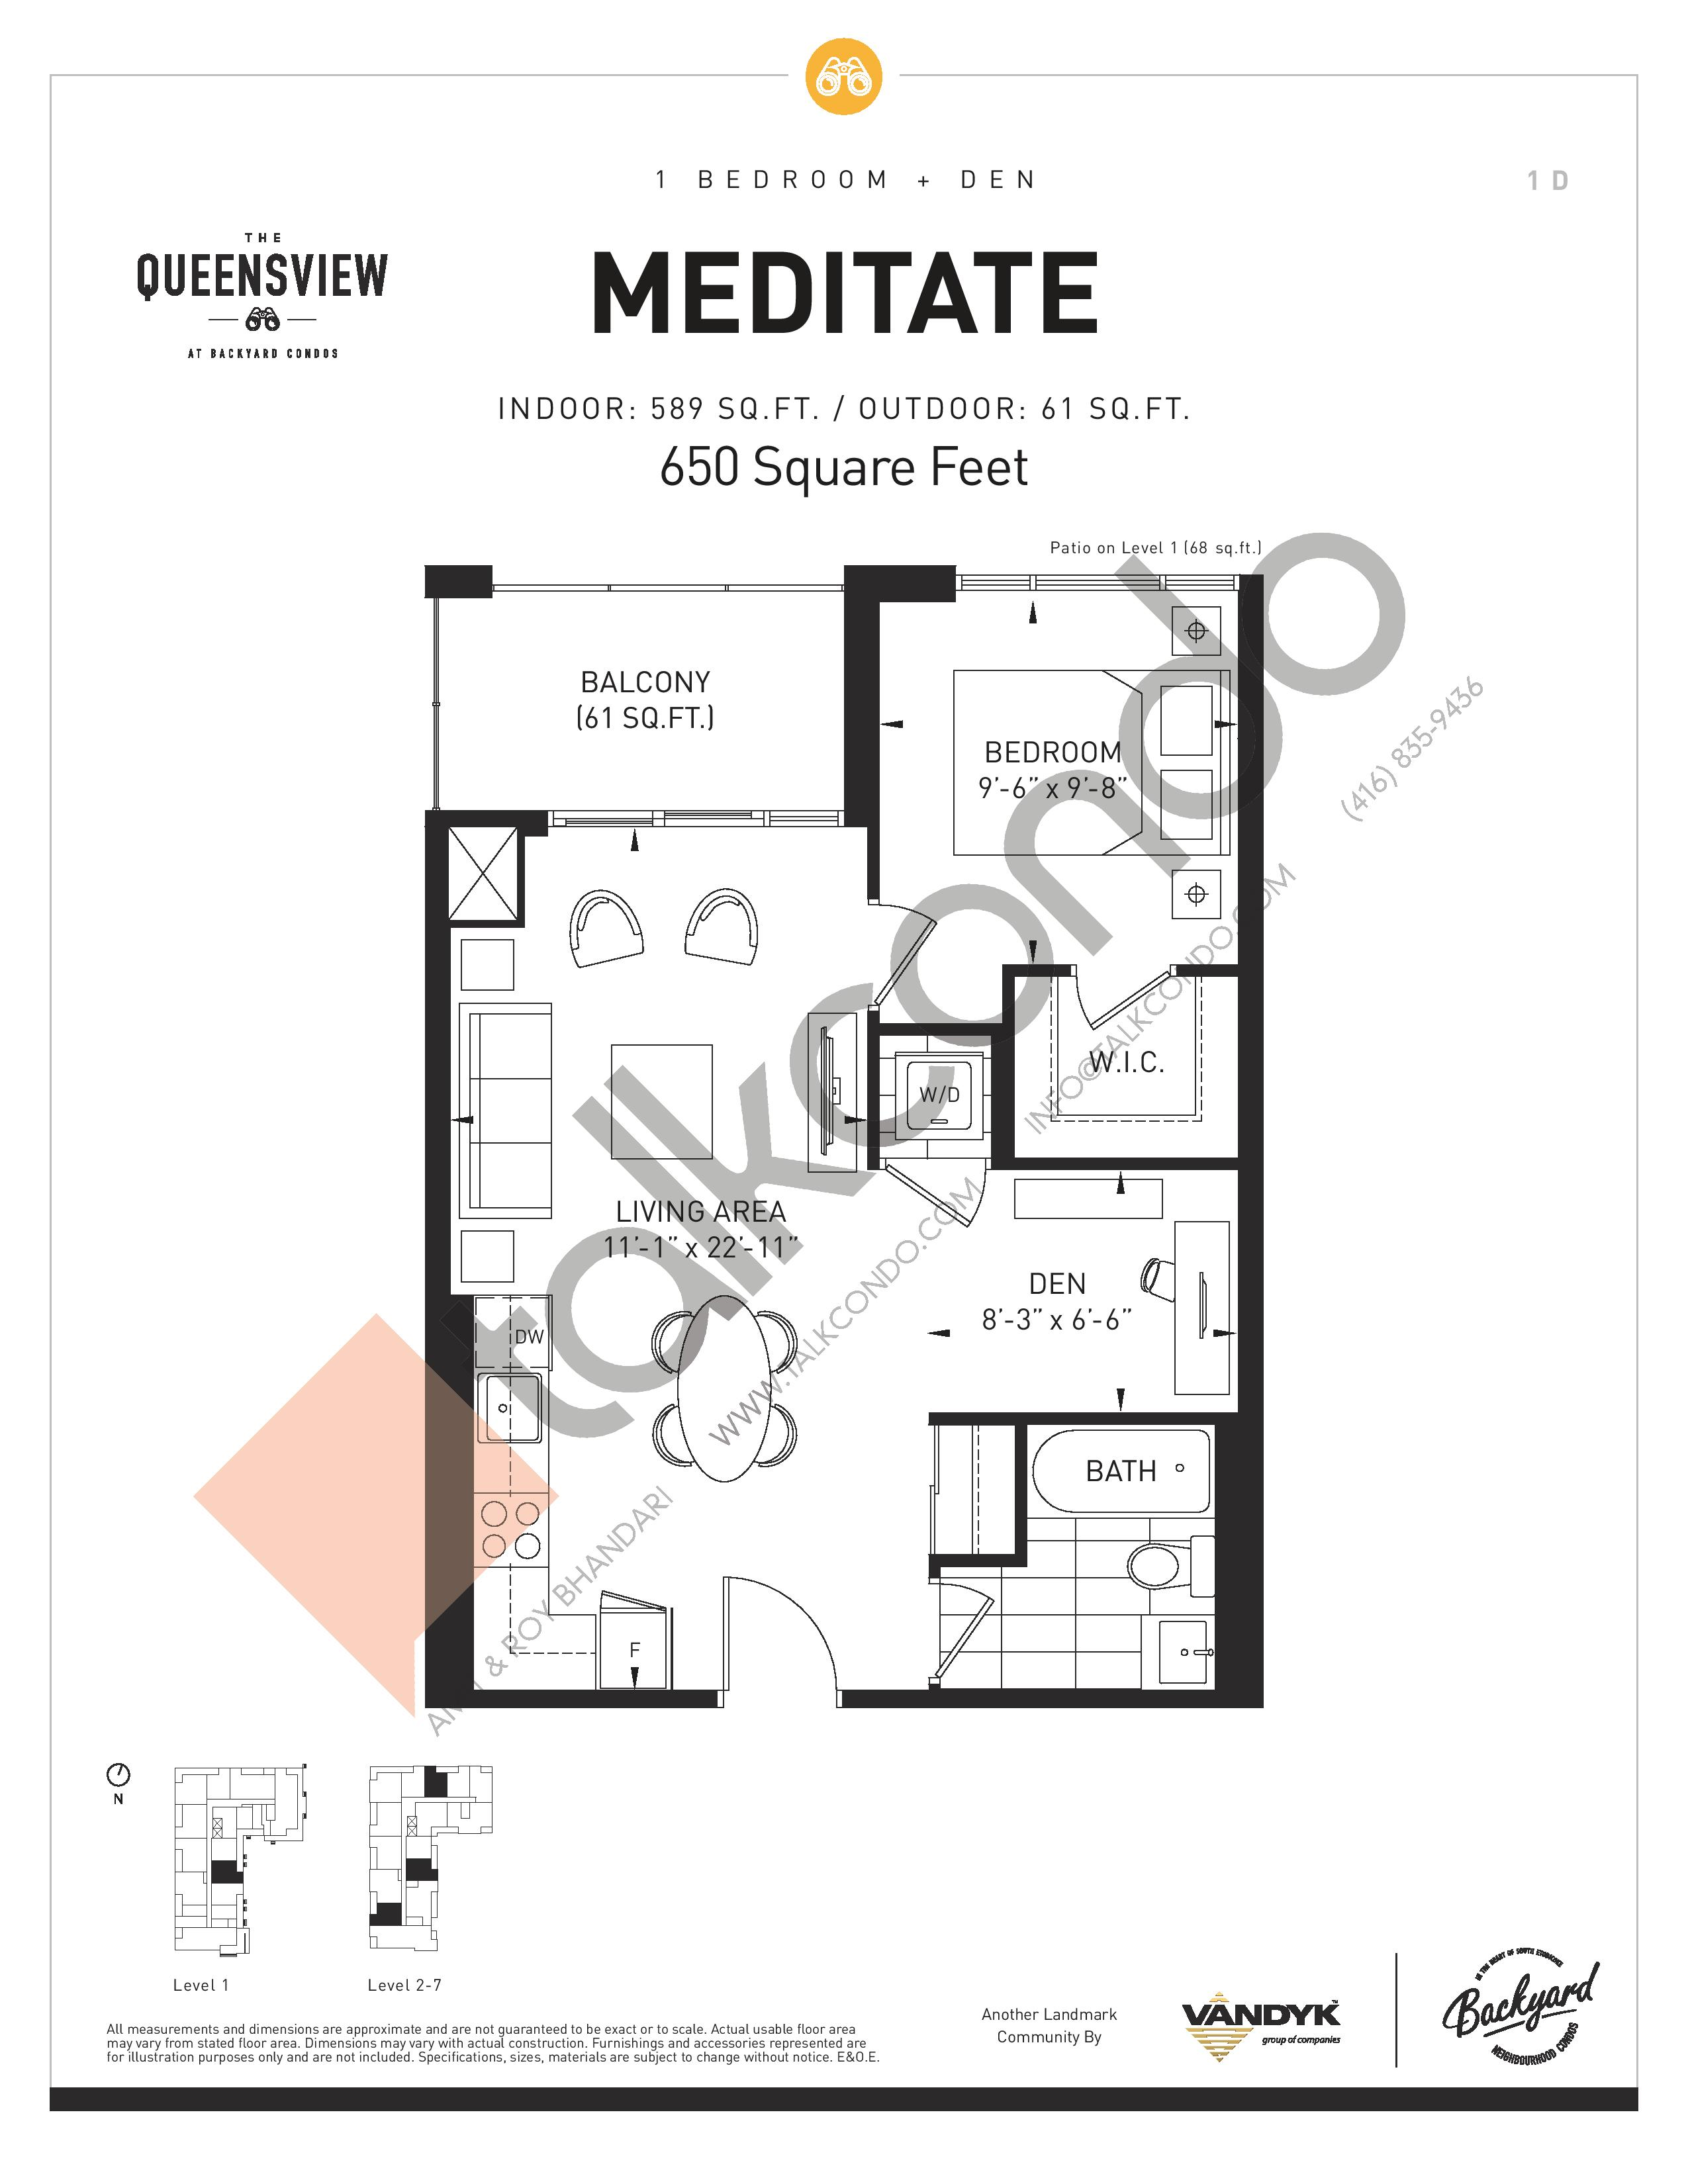 Meditate Floor Plan at The Queensview at Backyard Condos - 589 sq.ft